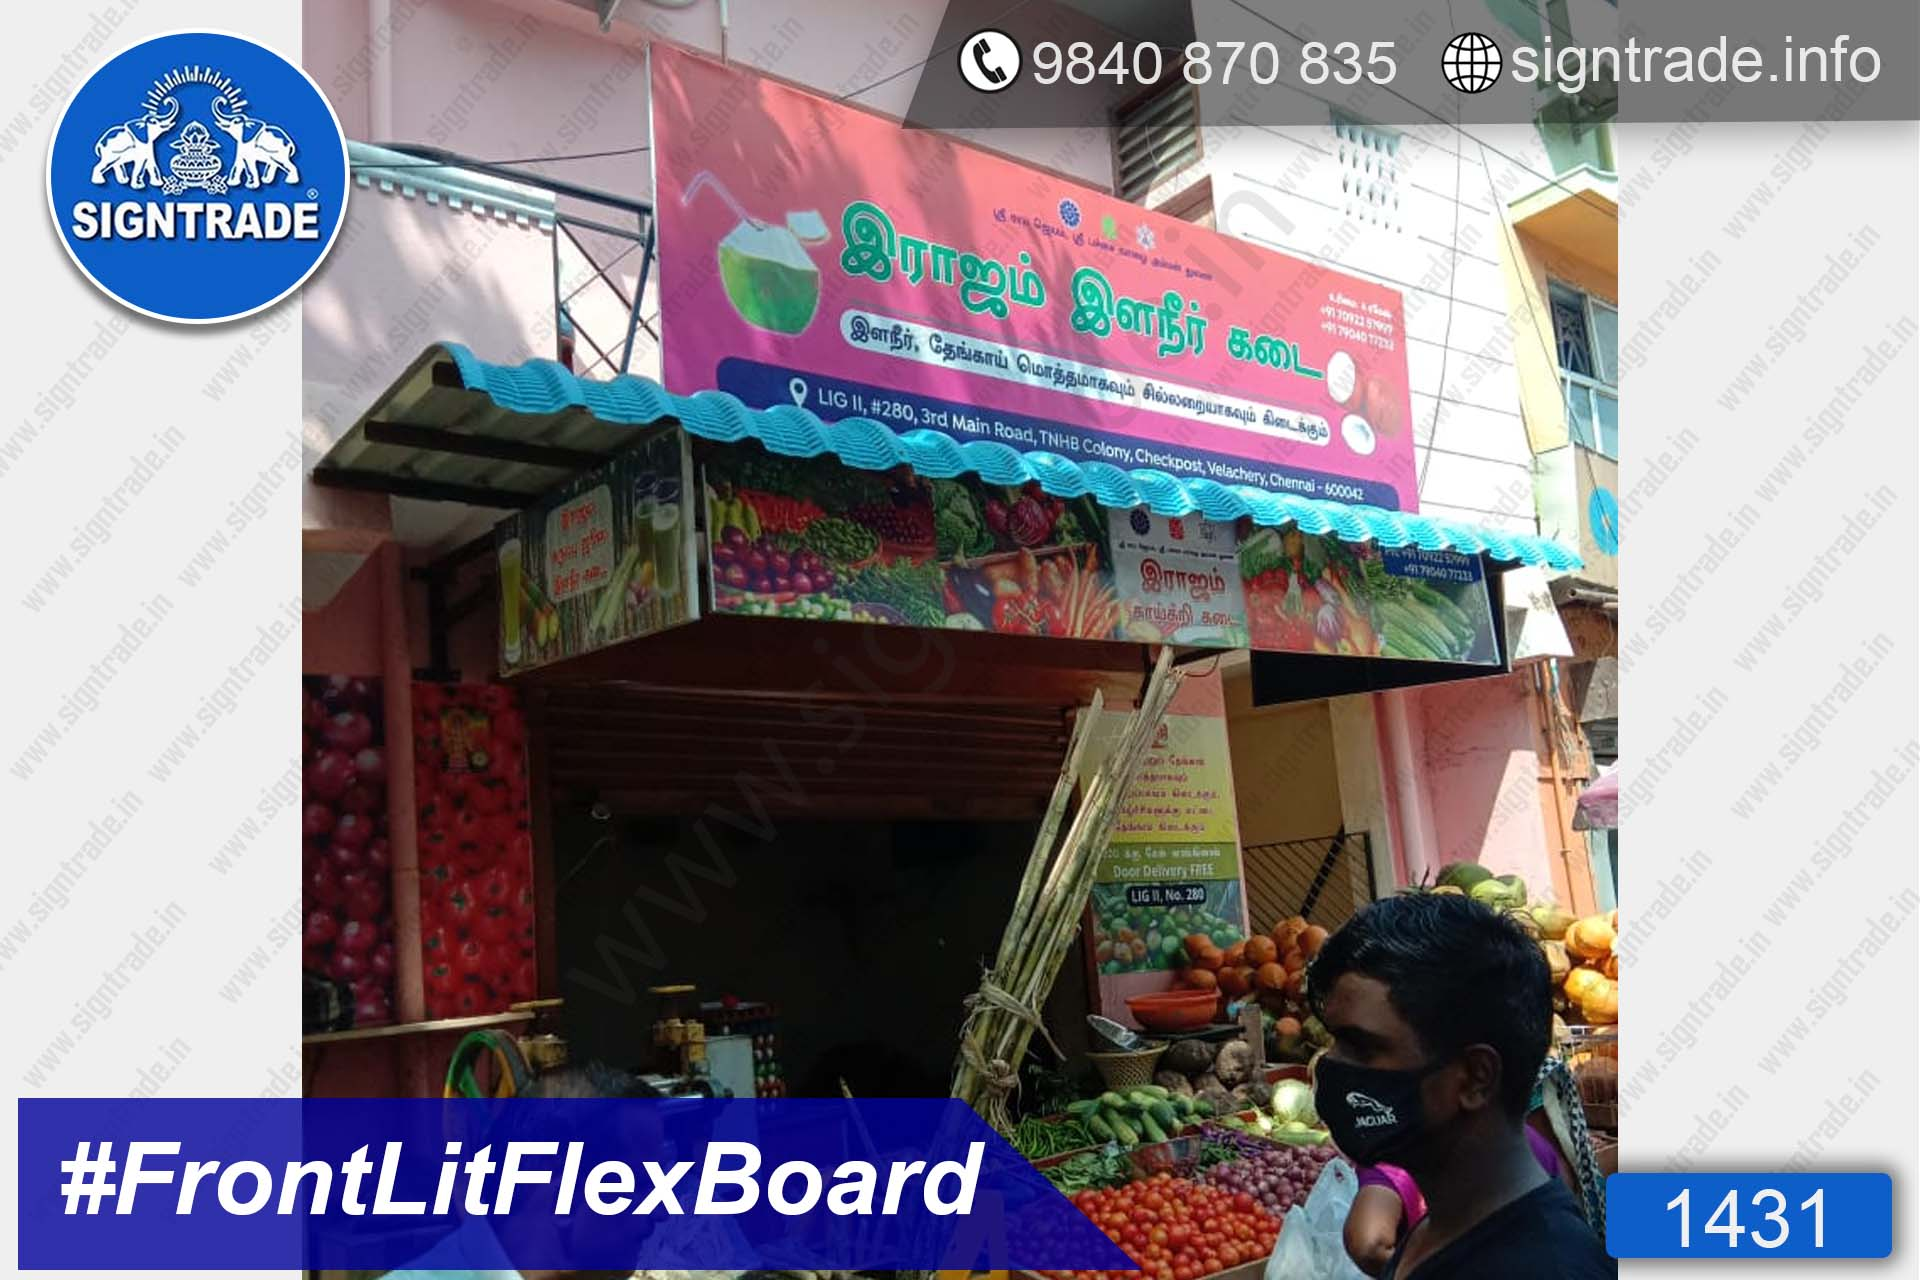 1431, Flex Board, Frontlit Flex Board, Star Frontlit Flex Board, Frontlit Flex Banners, Shop Front Flex Board, Shop Flex Board, Star Flex